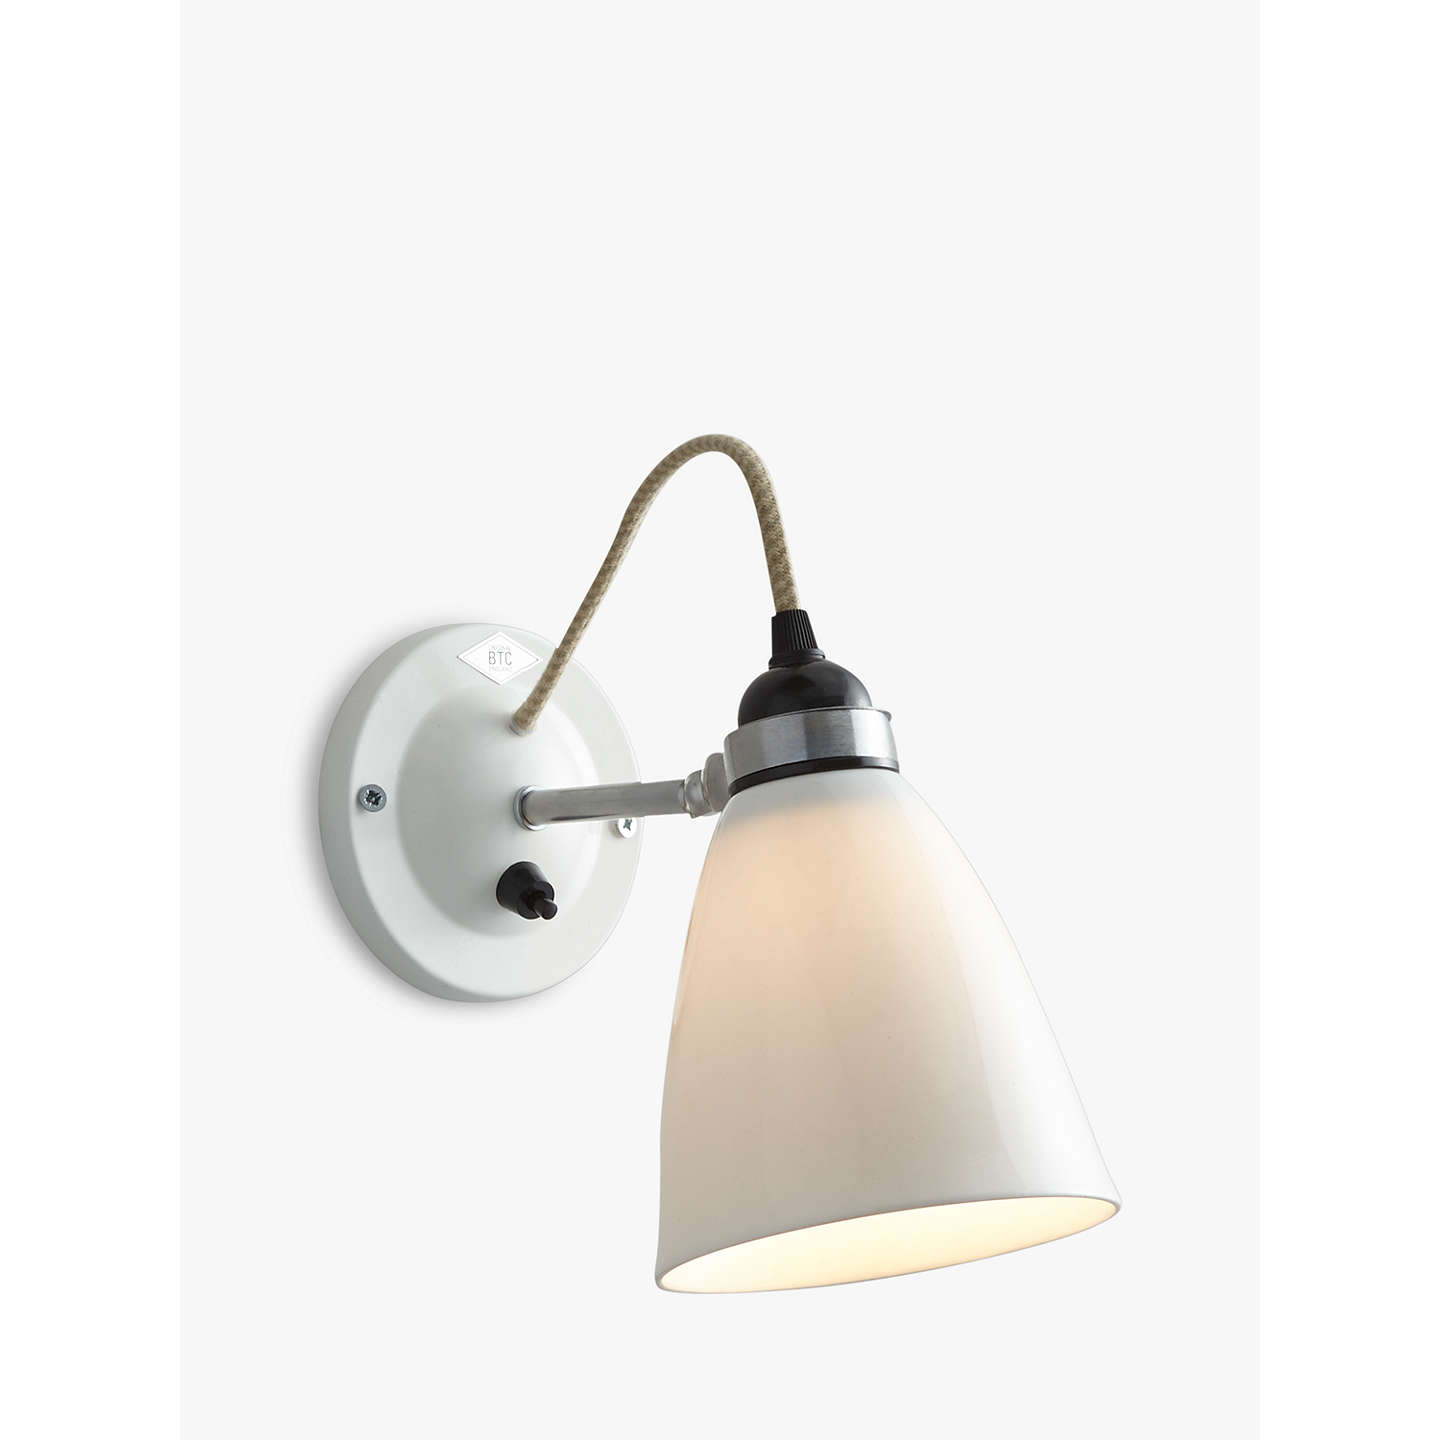 John Lewis Hector Outdoor Wall Light: Original BTC Hector Dome Switched Wall Light, Medium